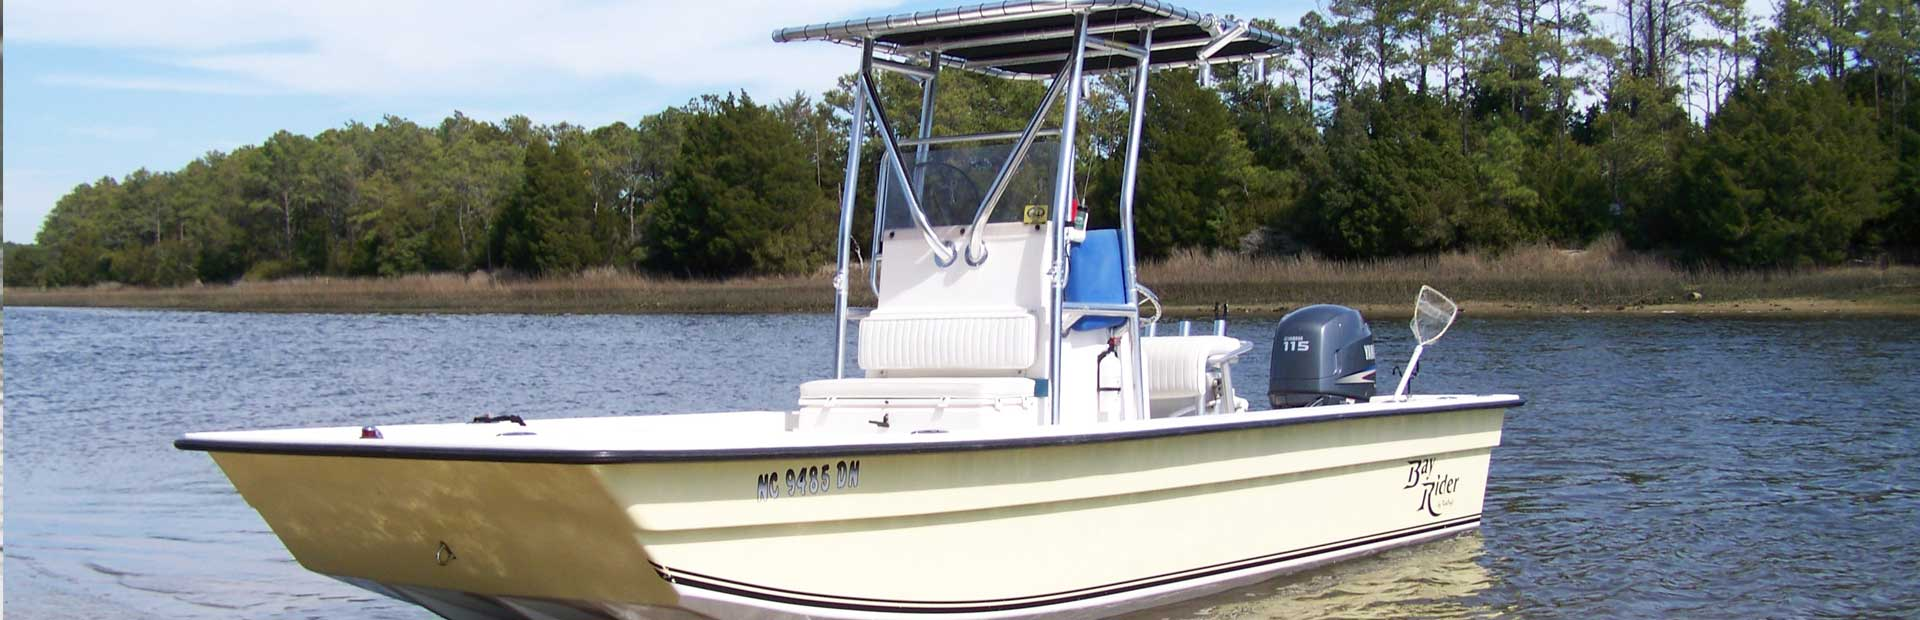 Center Console Fishing Boat on a lake.